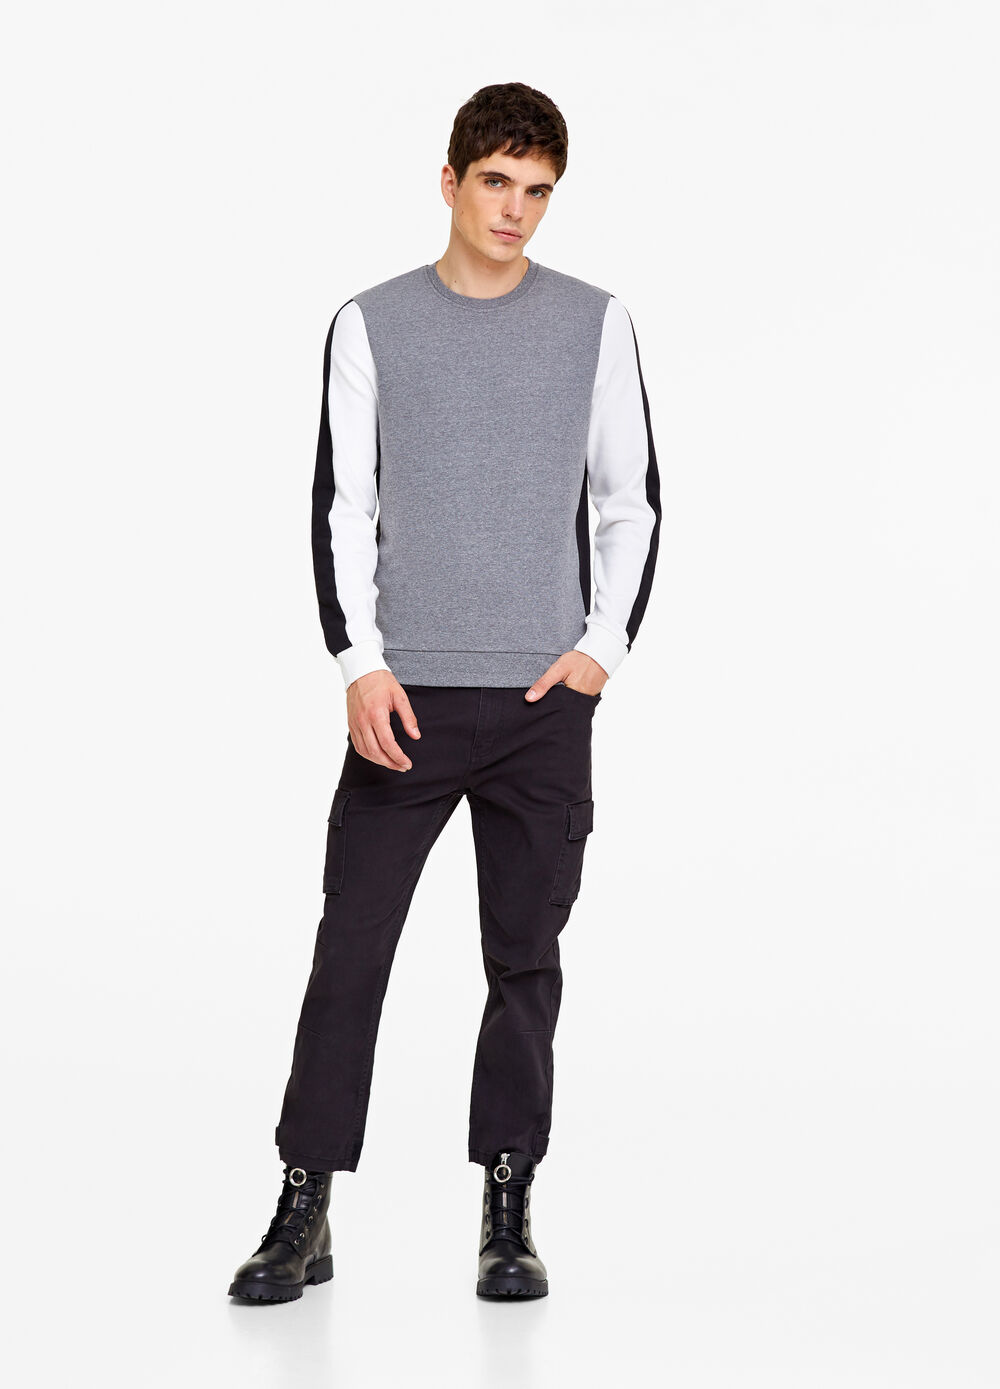 Two-colour chenille sweatshirt with bands